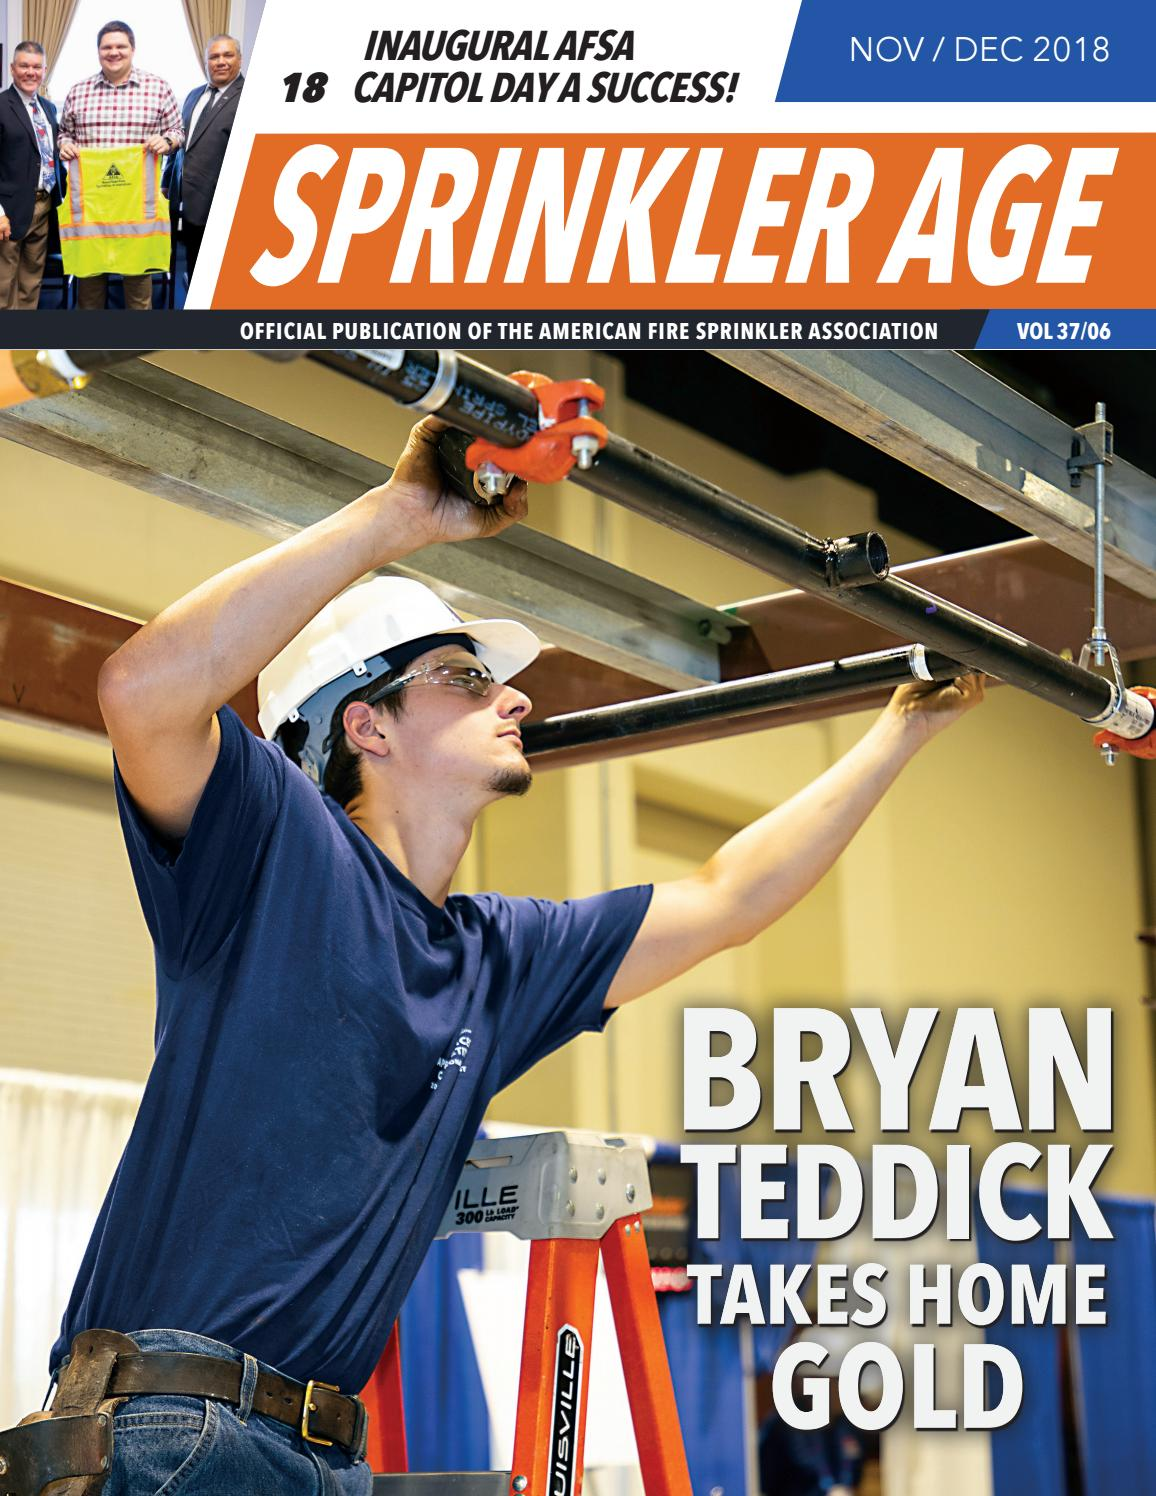 Sprinkler Age Nov/Dec 2018 by SprinklerAge - issuu